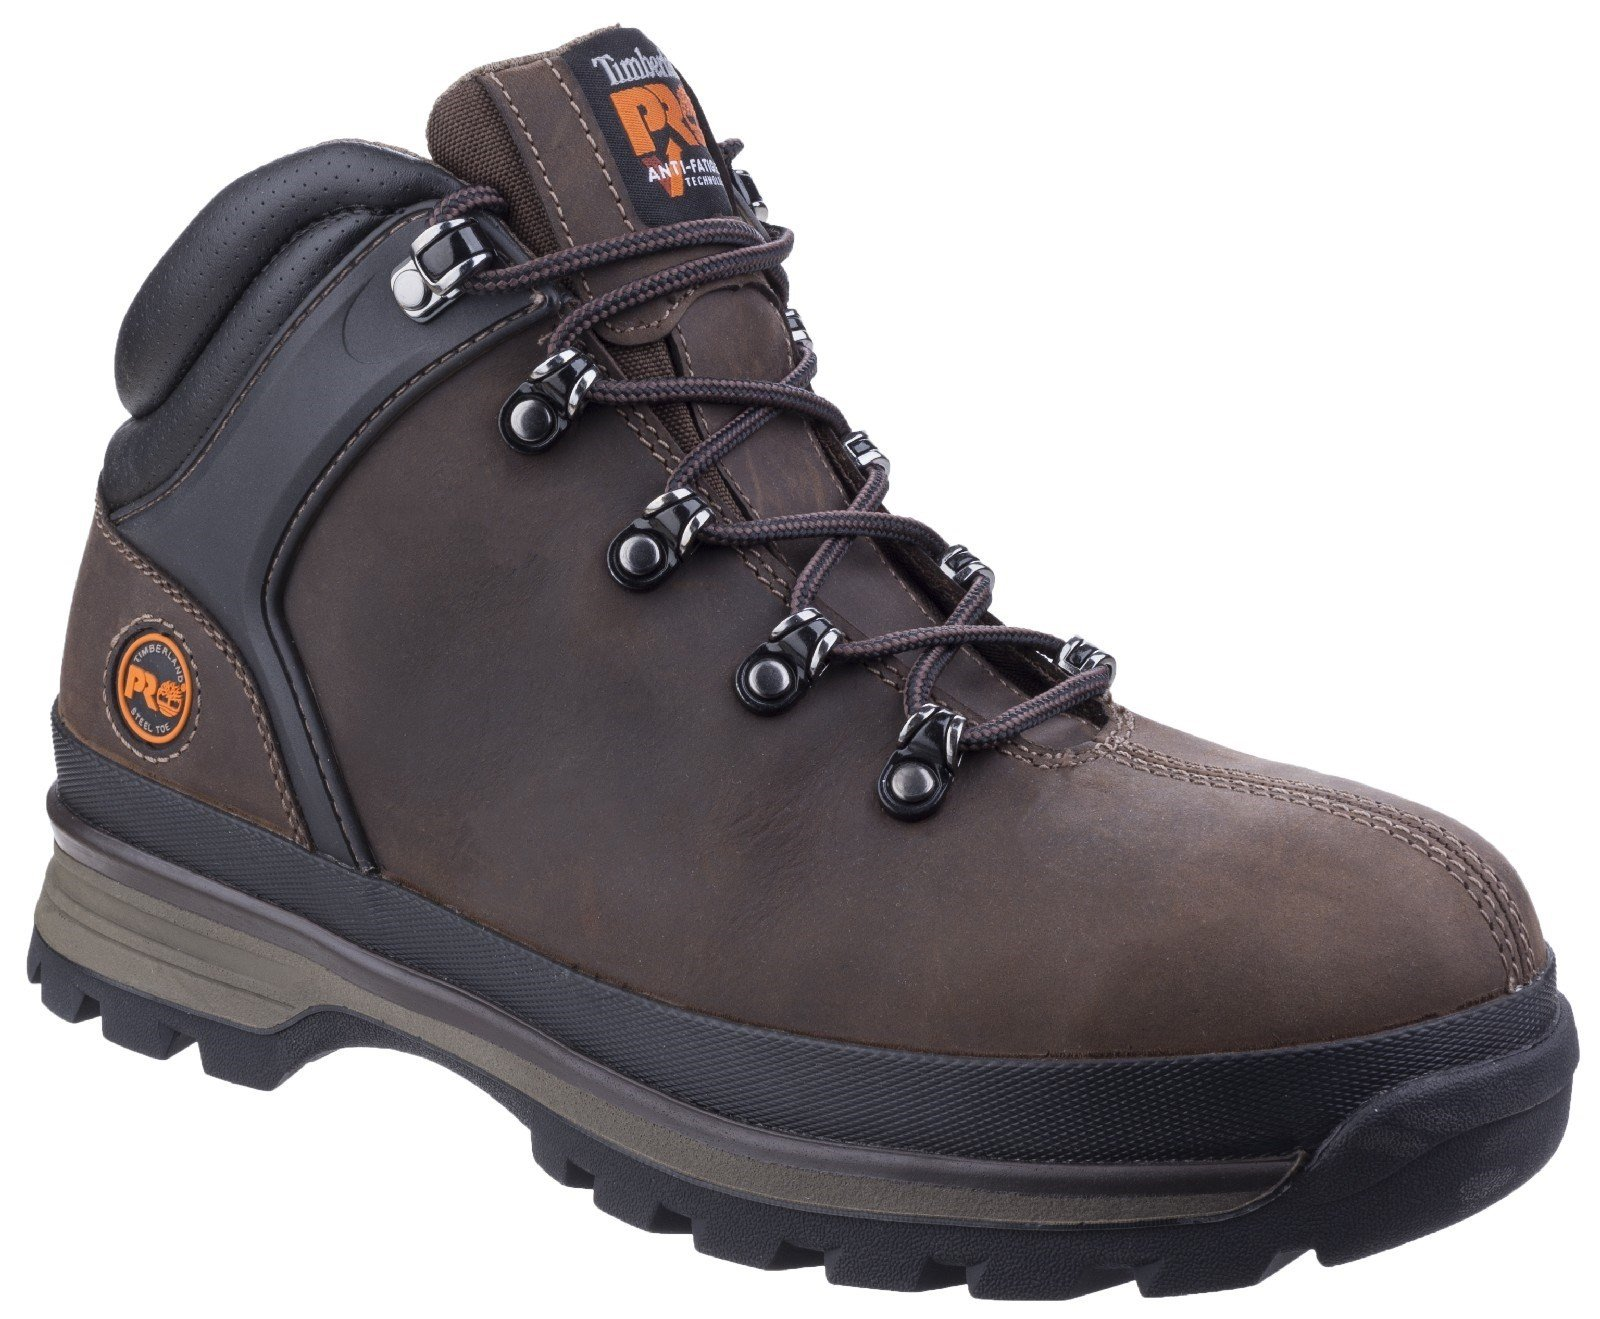 Timberland Pro Men's Splitrock XT Lace-up Safety Boot Various Colours 25948 - Gaucho 10